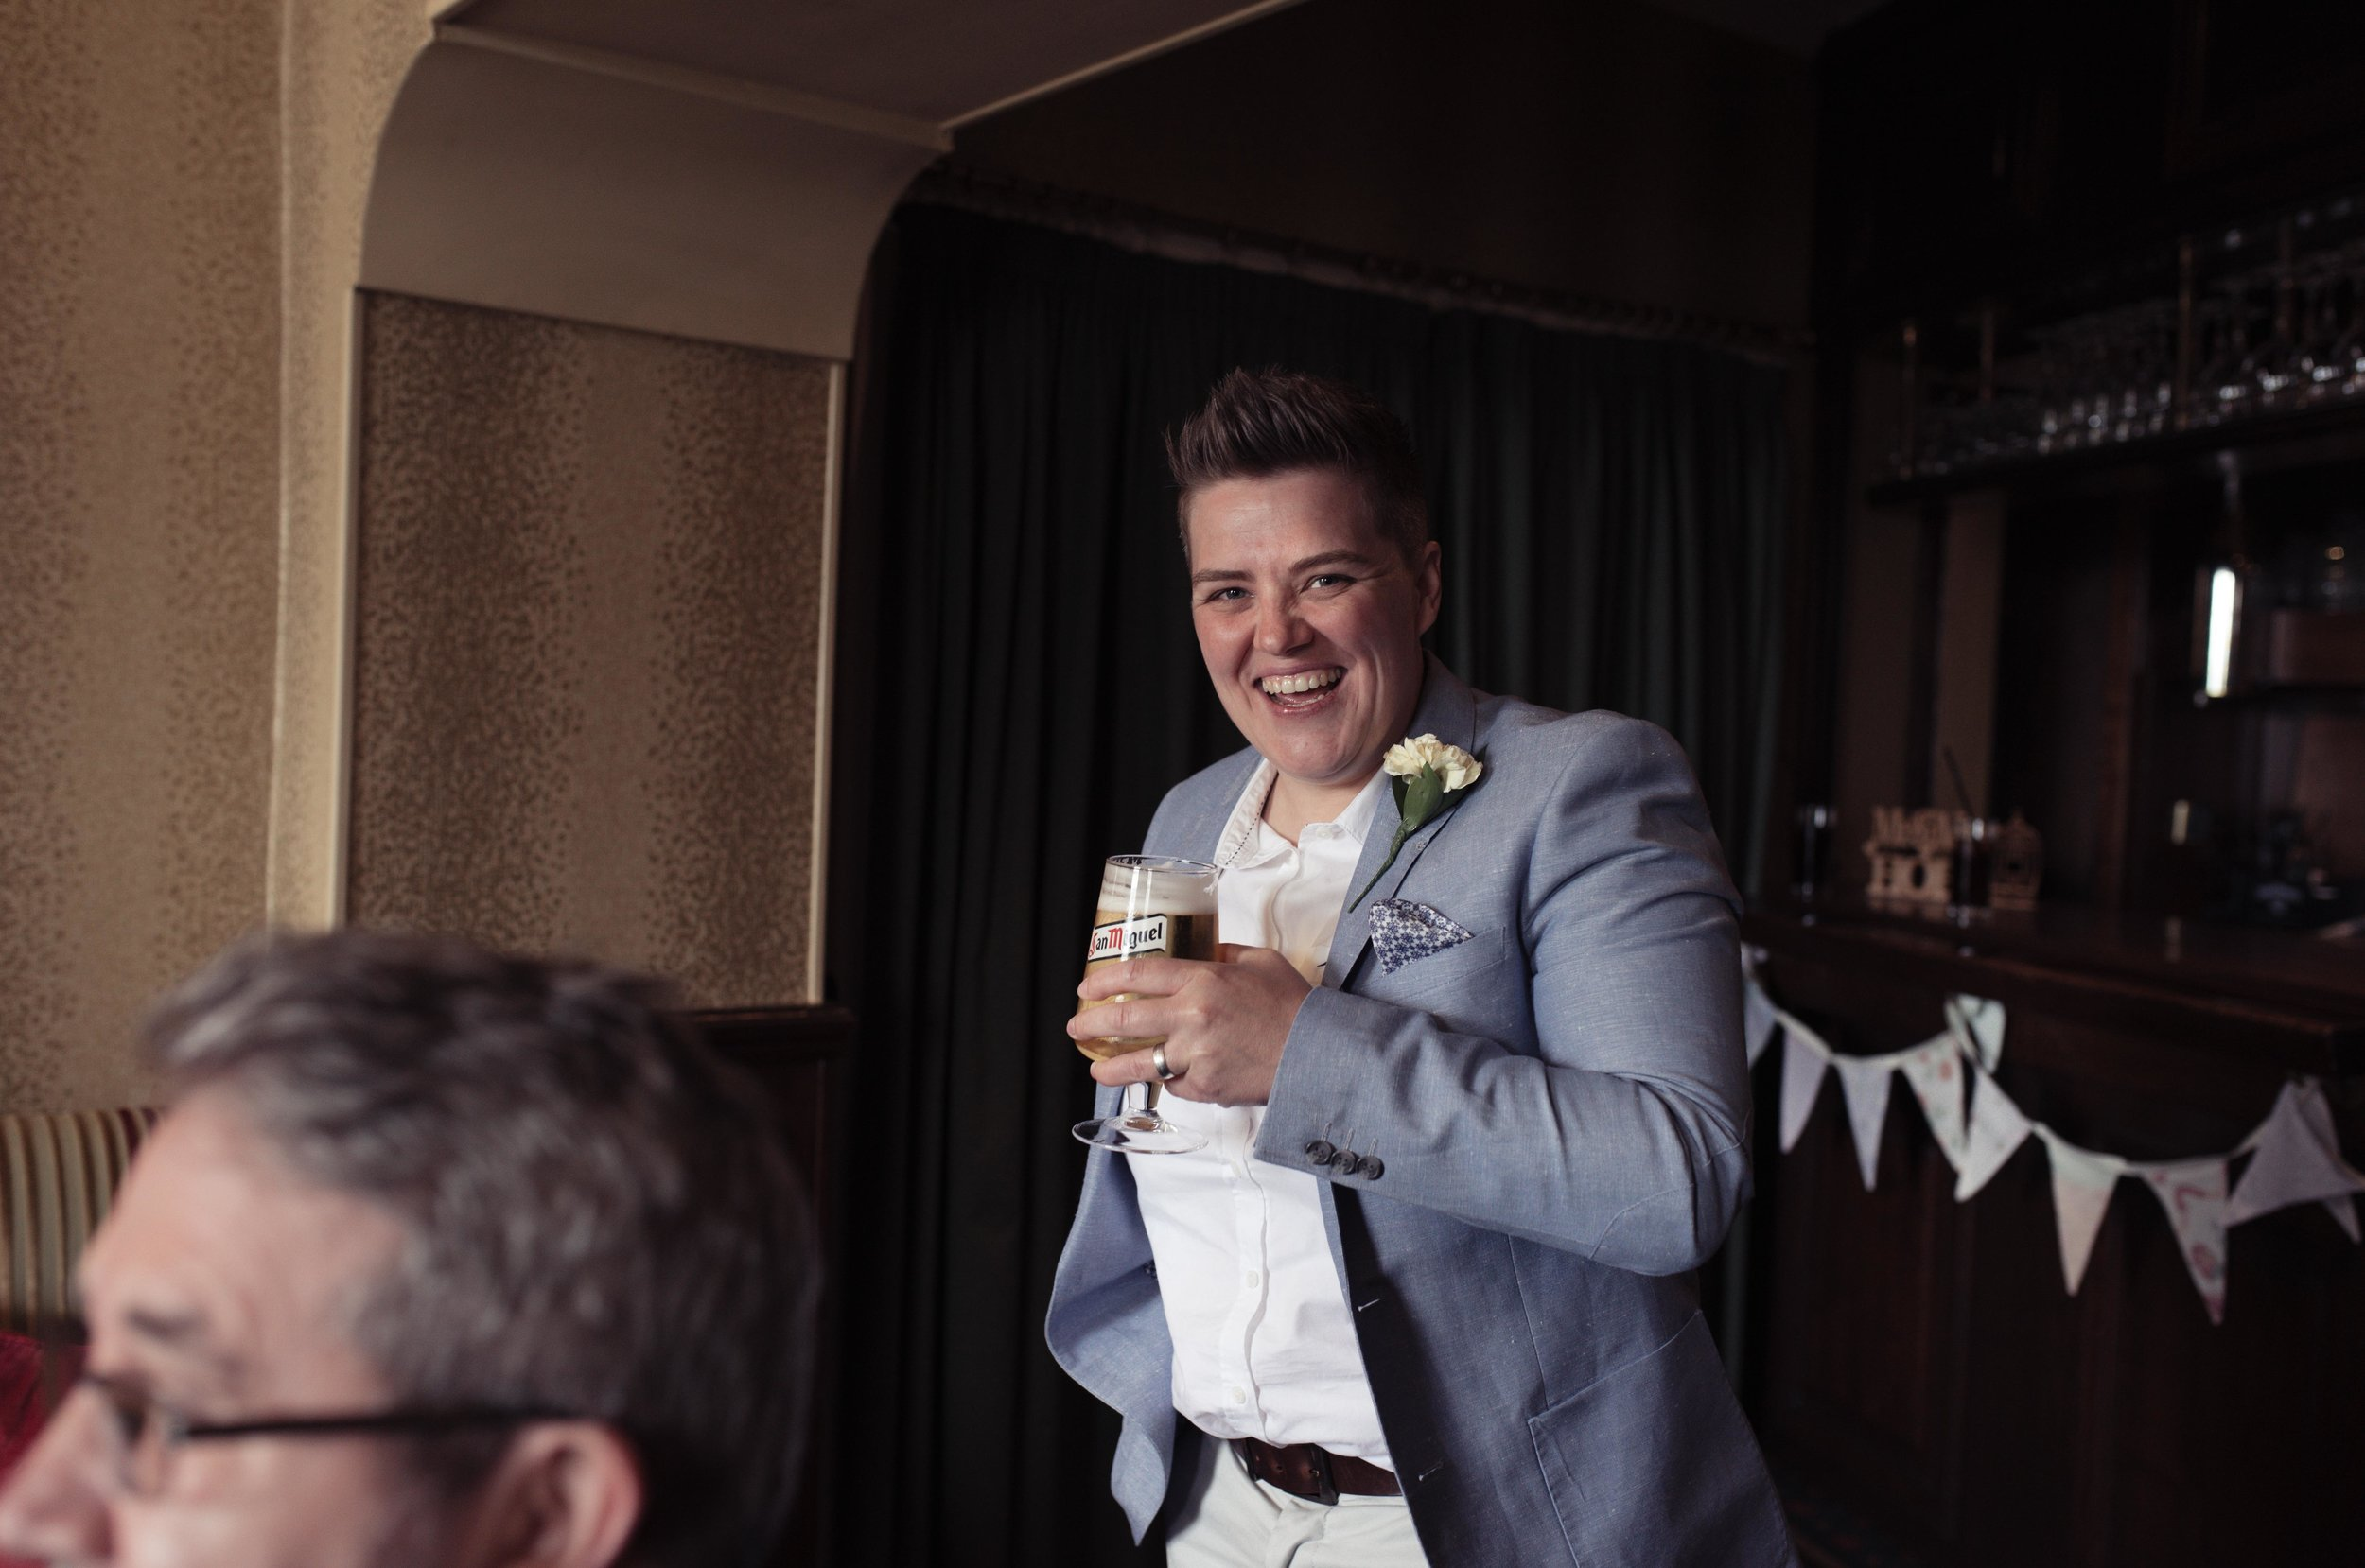 A wedding guest has a massive smile on her face in the bar of the wedding venue